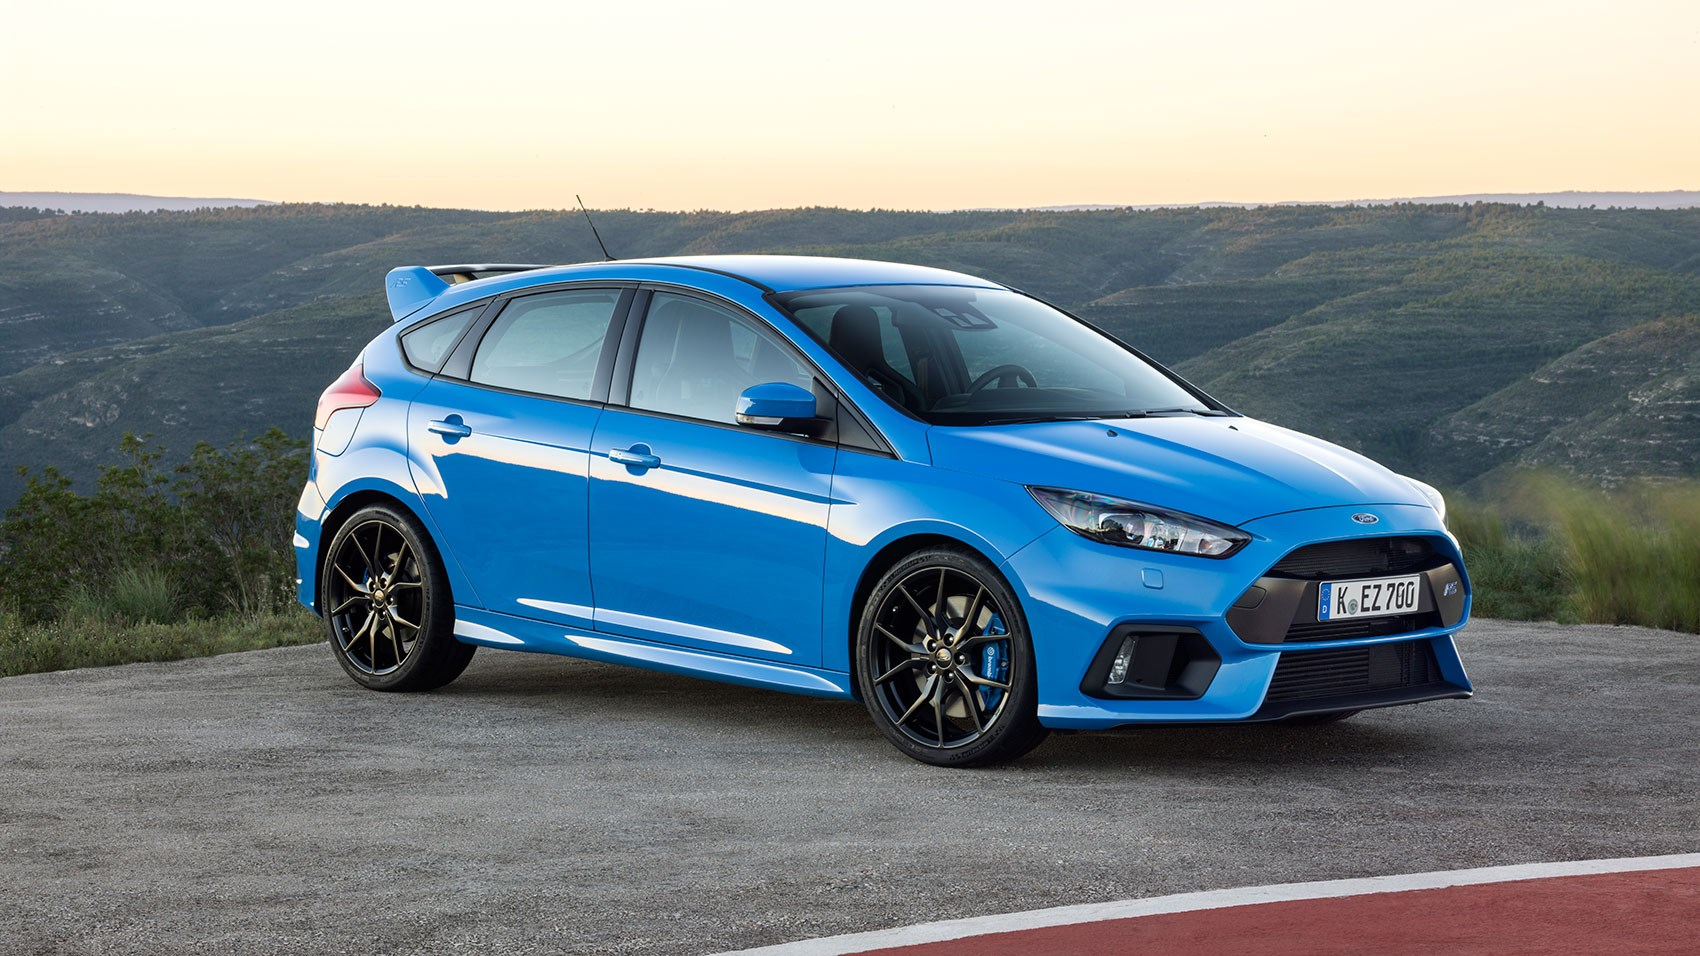 rc car magazine with Ford Focus Rs 2016 Review on Ford Focus Rs 2016 Review besides Toyota Yaris Hot Hatch Its Getting Warmer In 2017 besides 16968286 together with NklEz together with Anki Cozmo 07 07 2016.